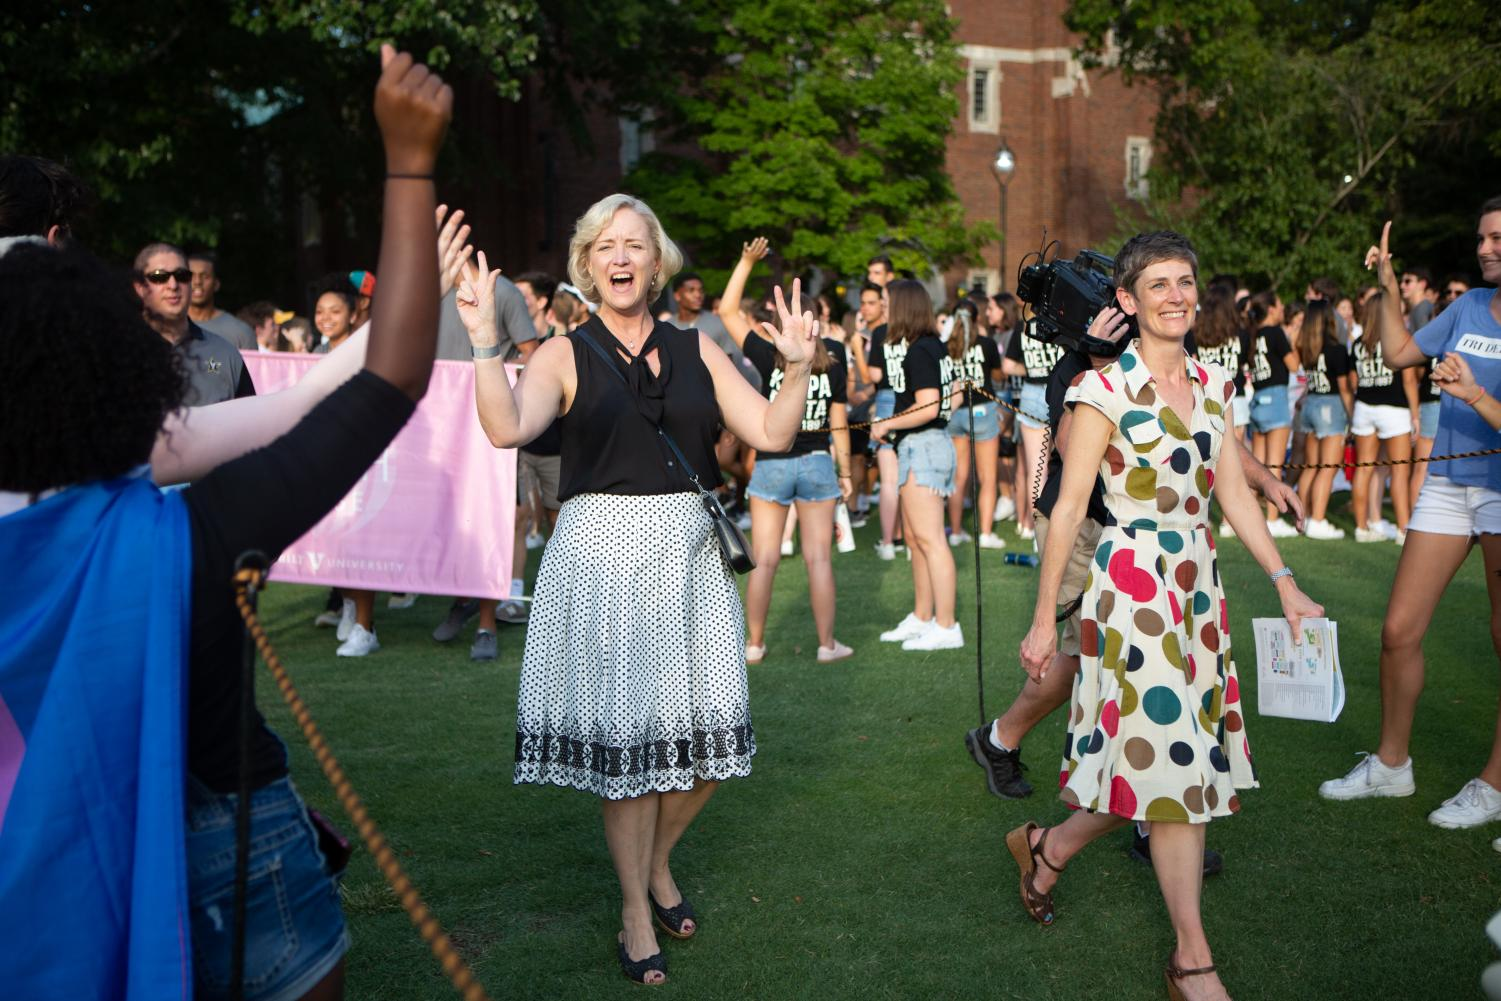 Interim+Chancellor+and+Provost+Susan+Wente+walks+with+new+students+during+Founders+Walk+on+Sunday.+%28Photo+by+Hunter+Long%29